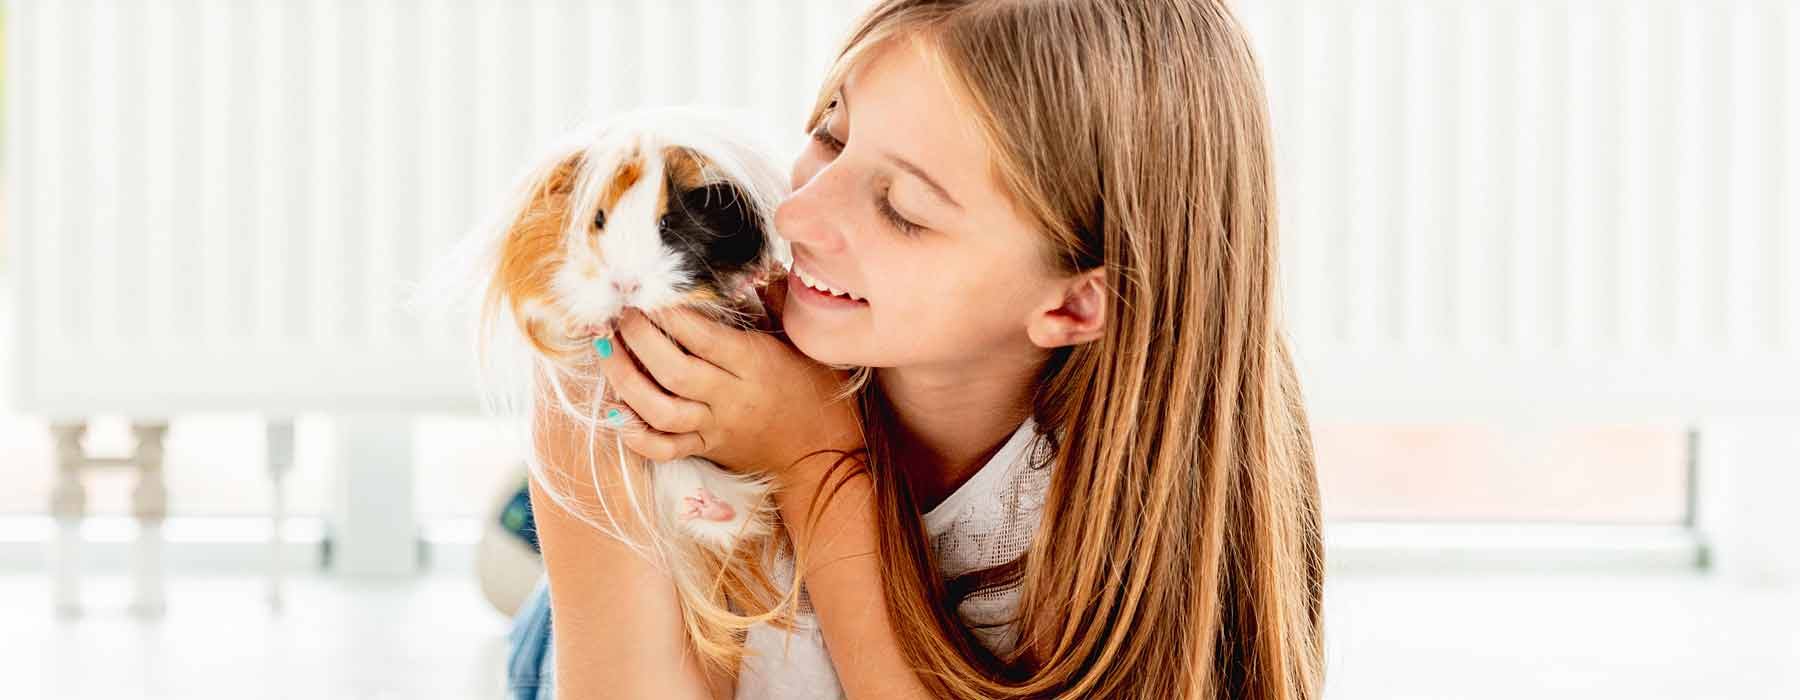 girl holding a long haired guinea pig